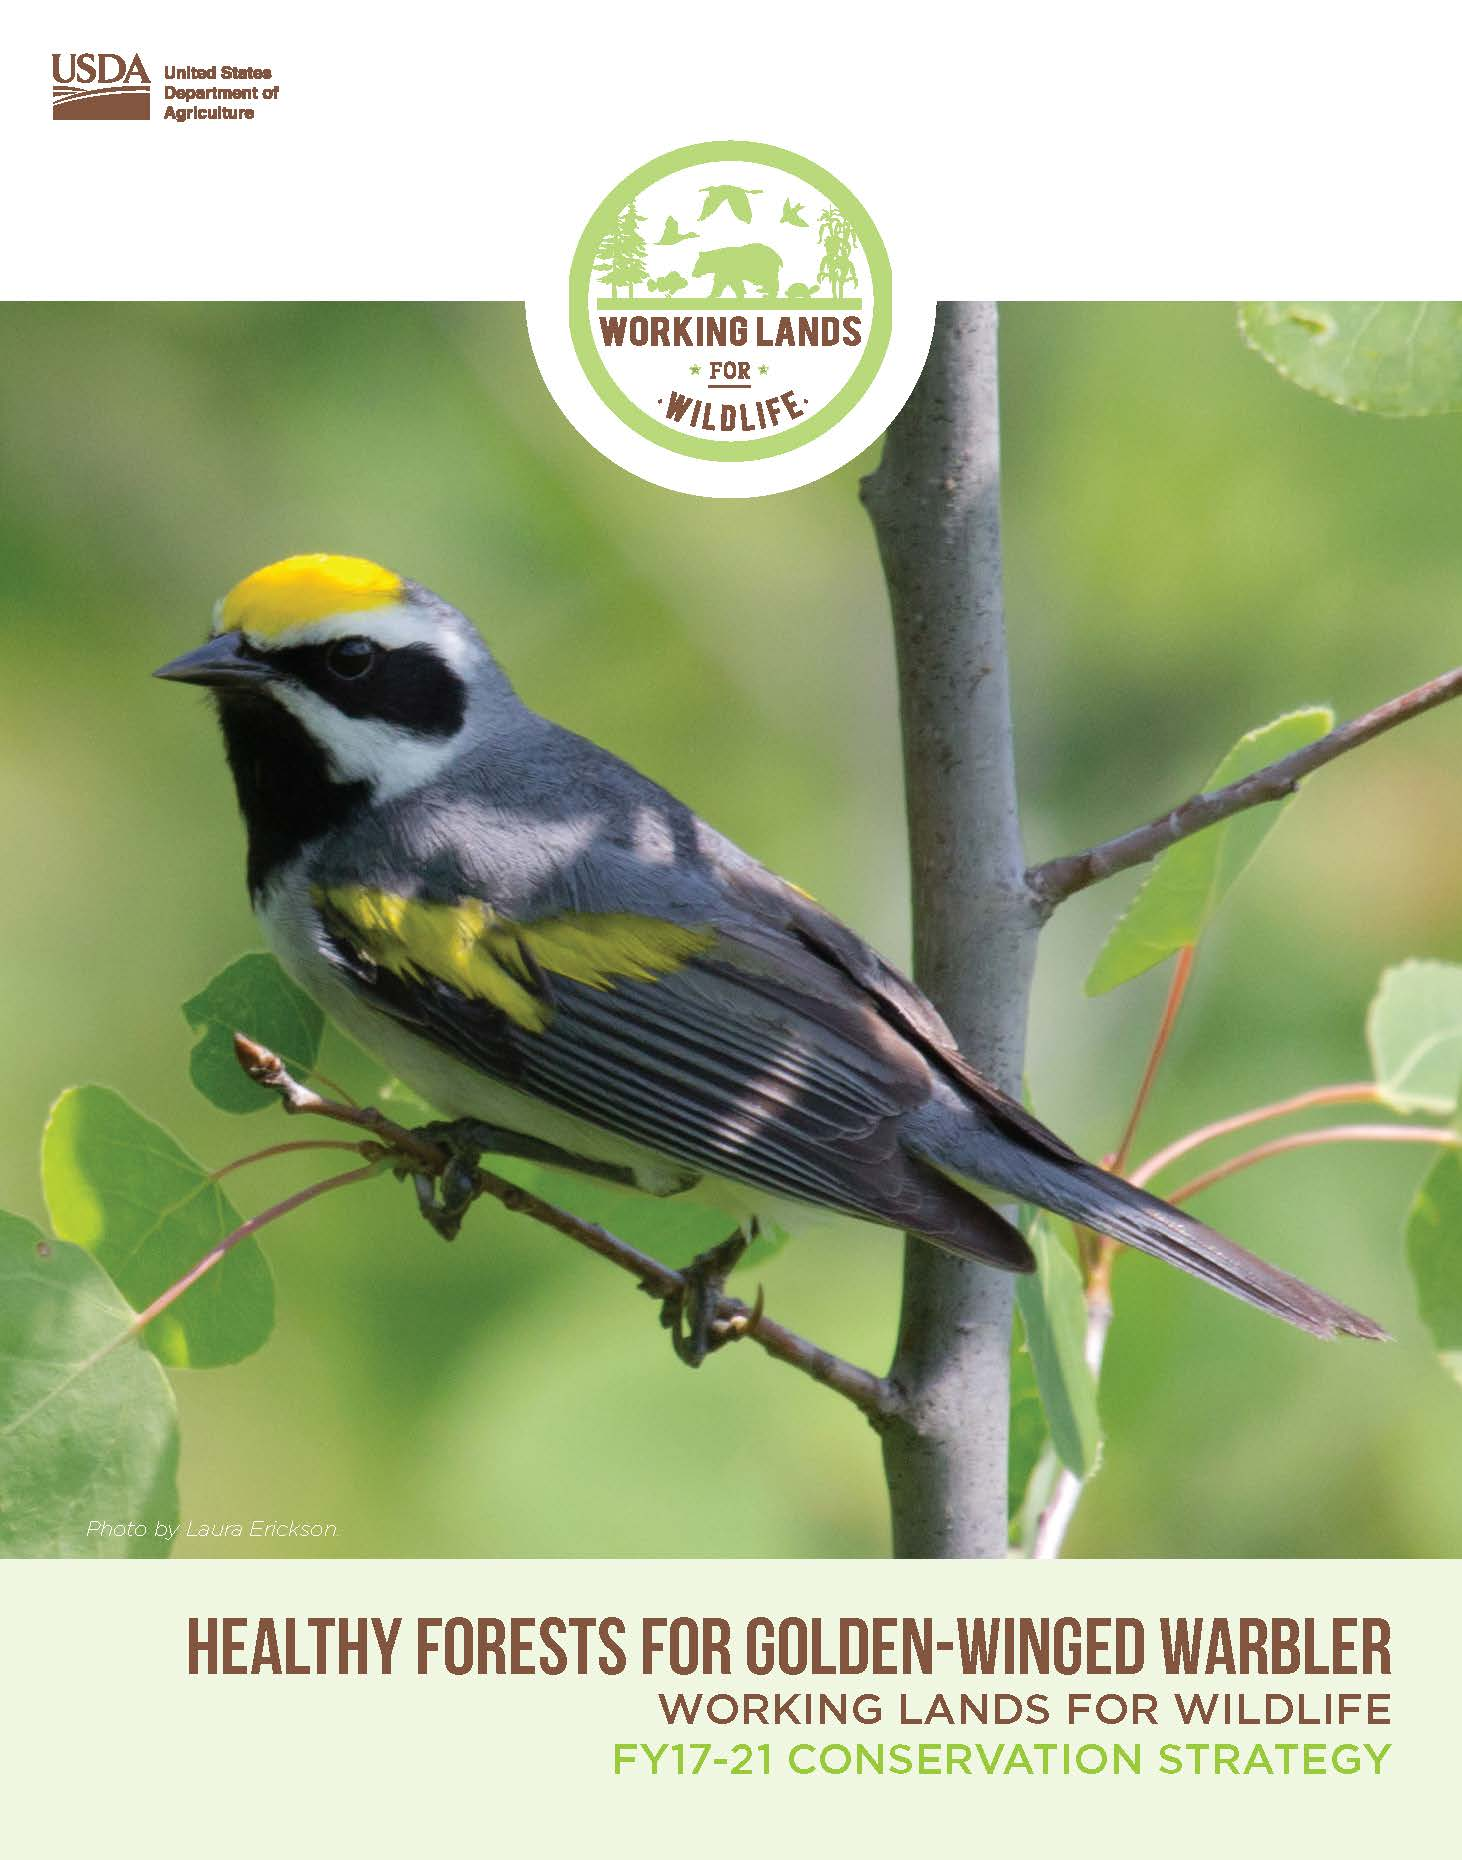 This five-year conservation strategy targets sustainable forestry efforts to help the at-risk migratory songbird. The strategy focuses on forestry practices that result in young forests, which the golden-winged warbler needs for nesting habitat.